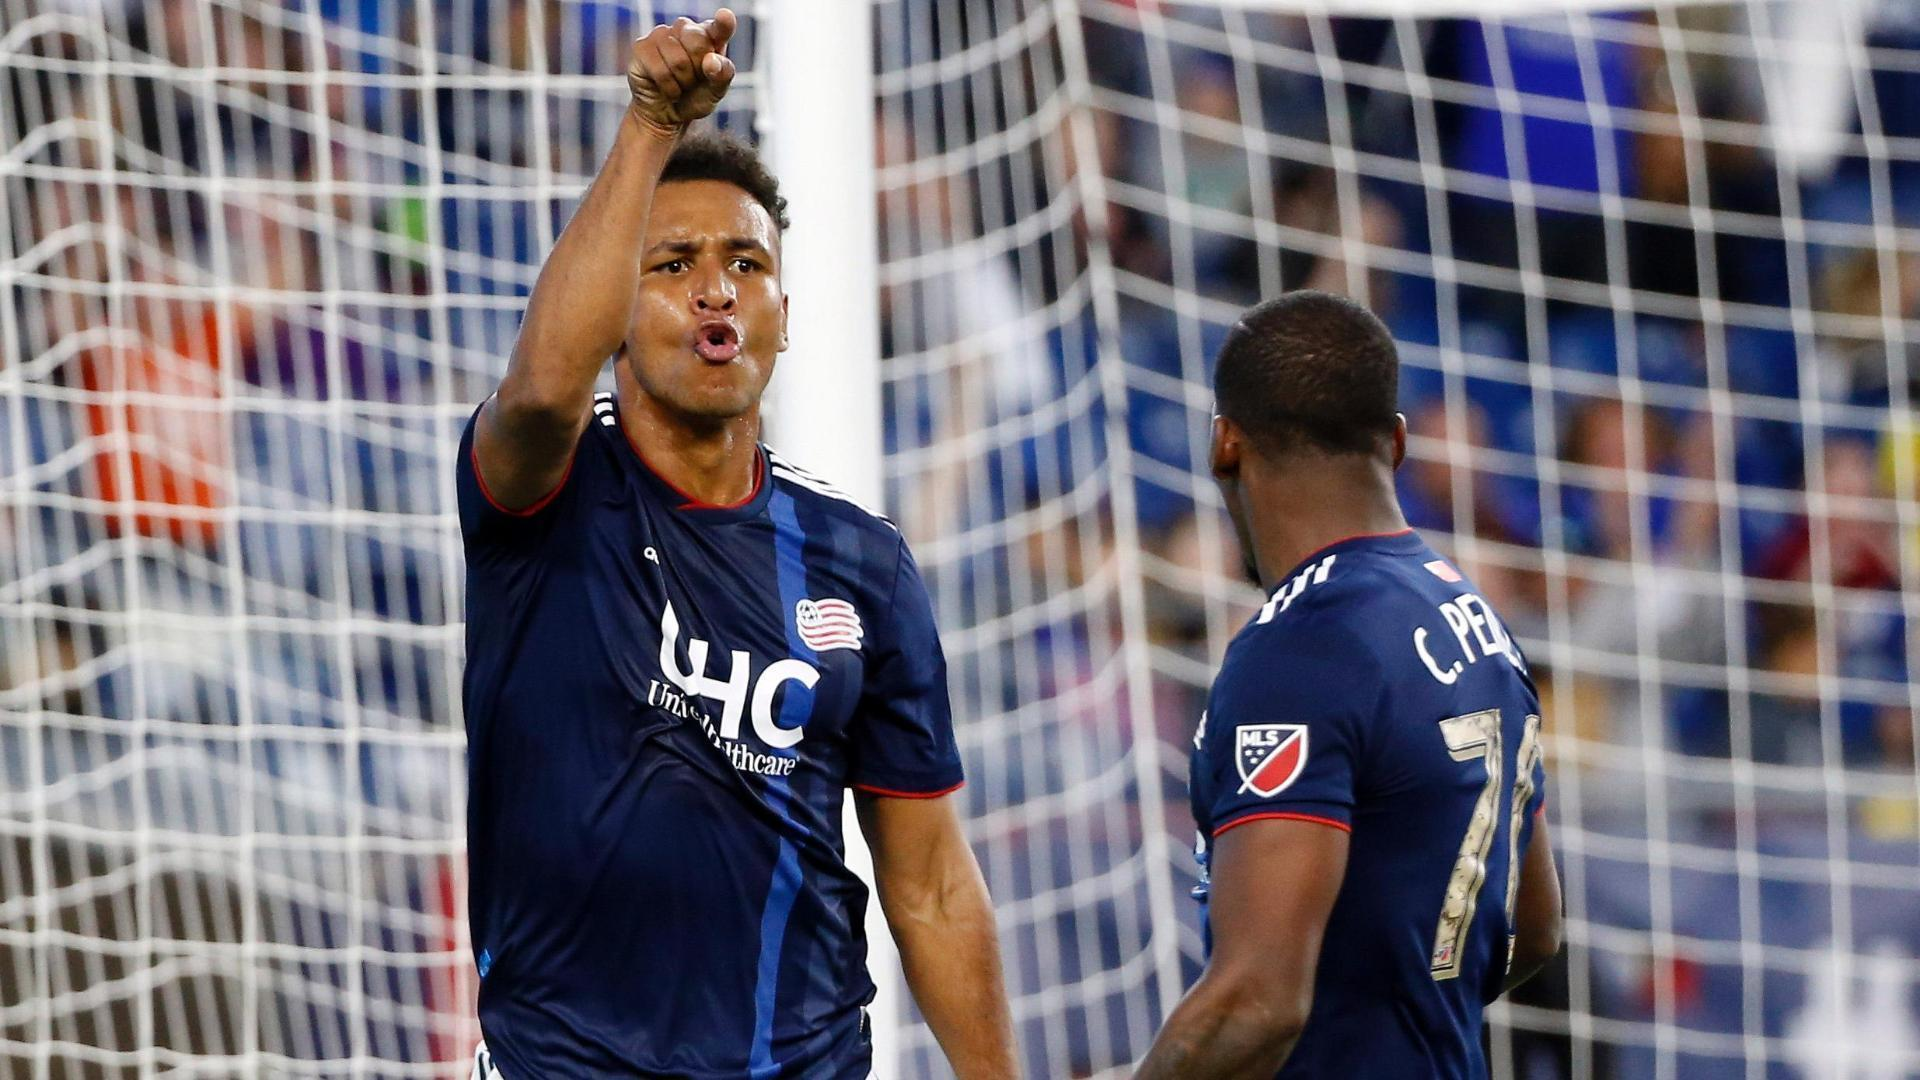 Agudelo puts Revs ahead in first game after Friedel firing